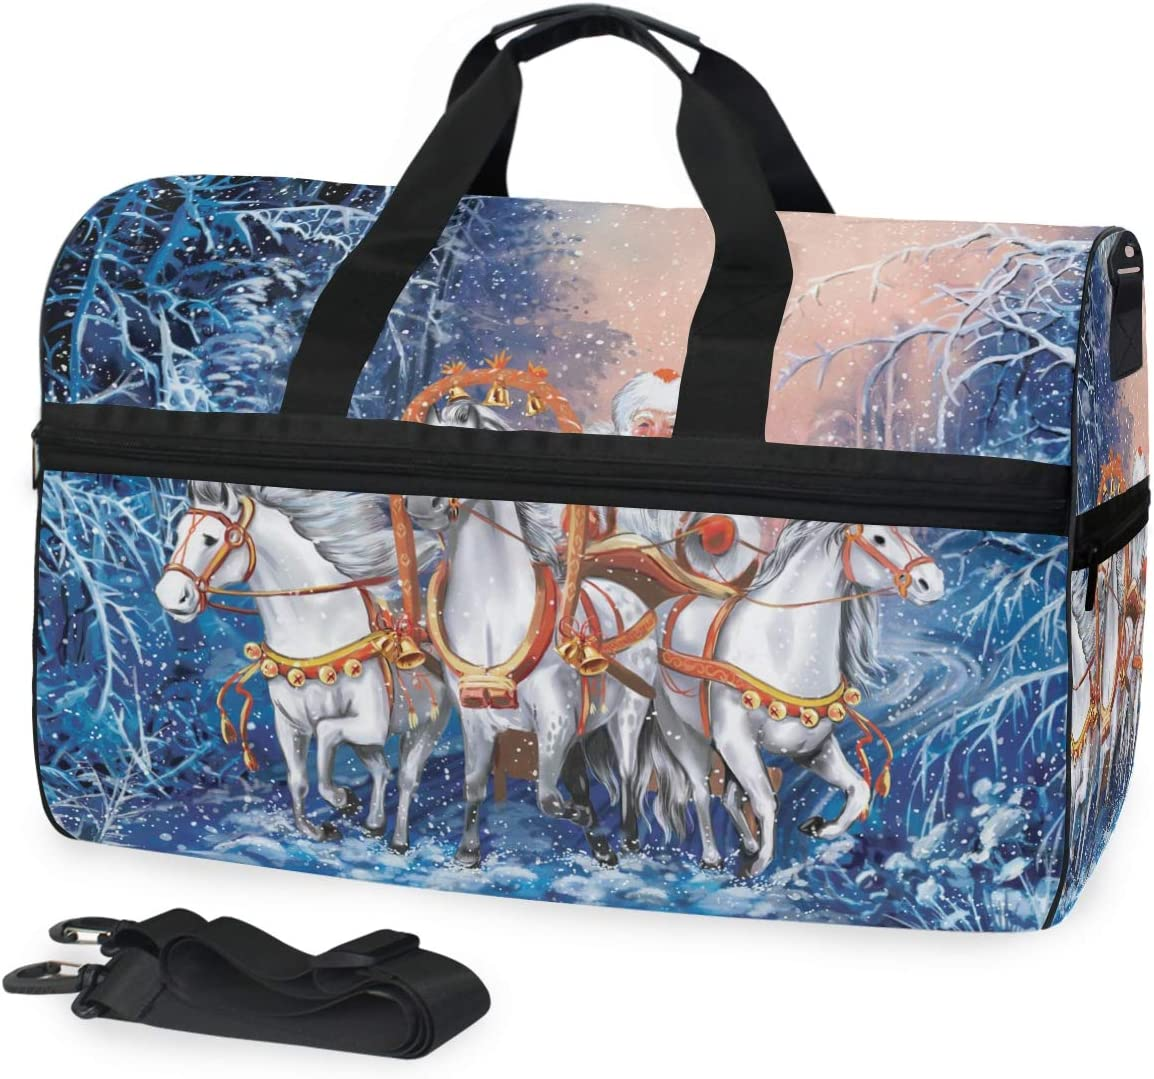 FANTAZIO A Russian Triple Of Horses With Santa Rides In Winter Forest Sports Duffle Bag Gym Bag Travel Duffel with Adjustable Strap